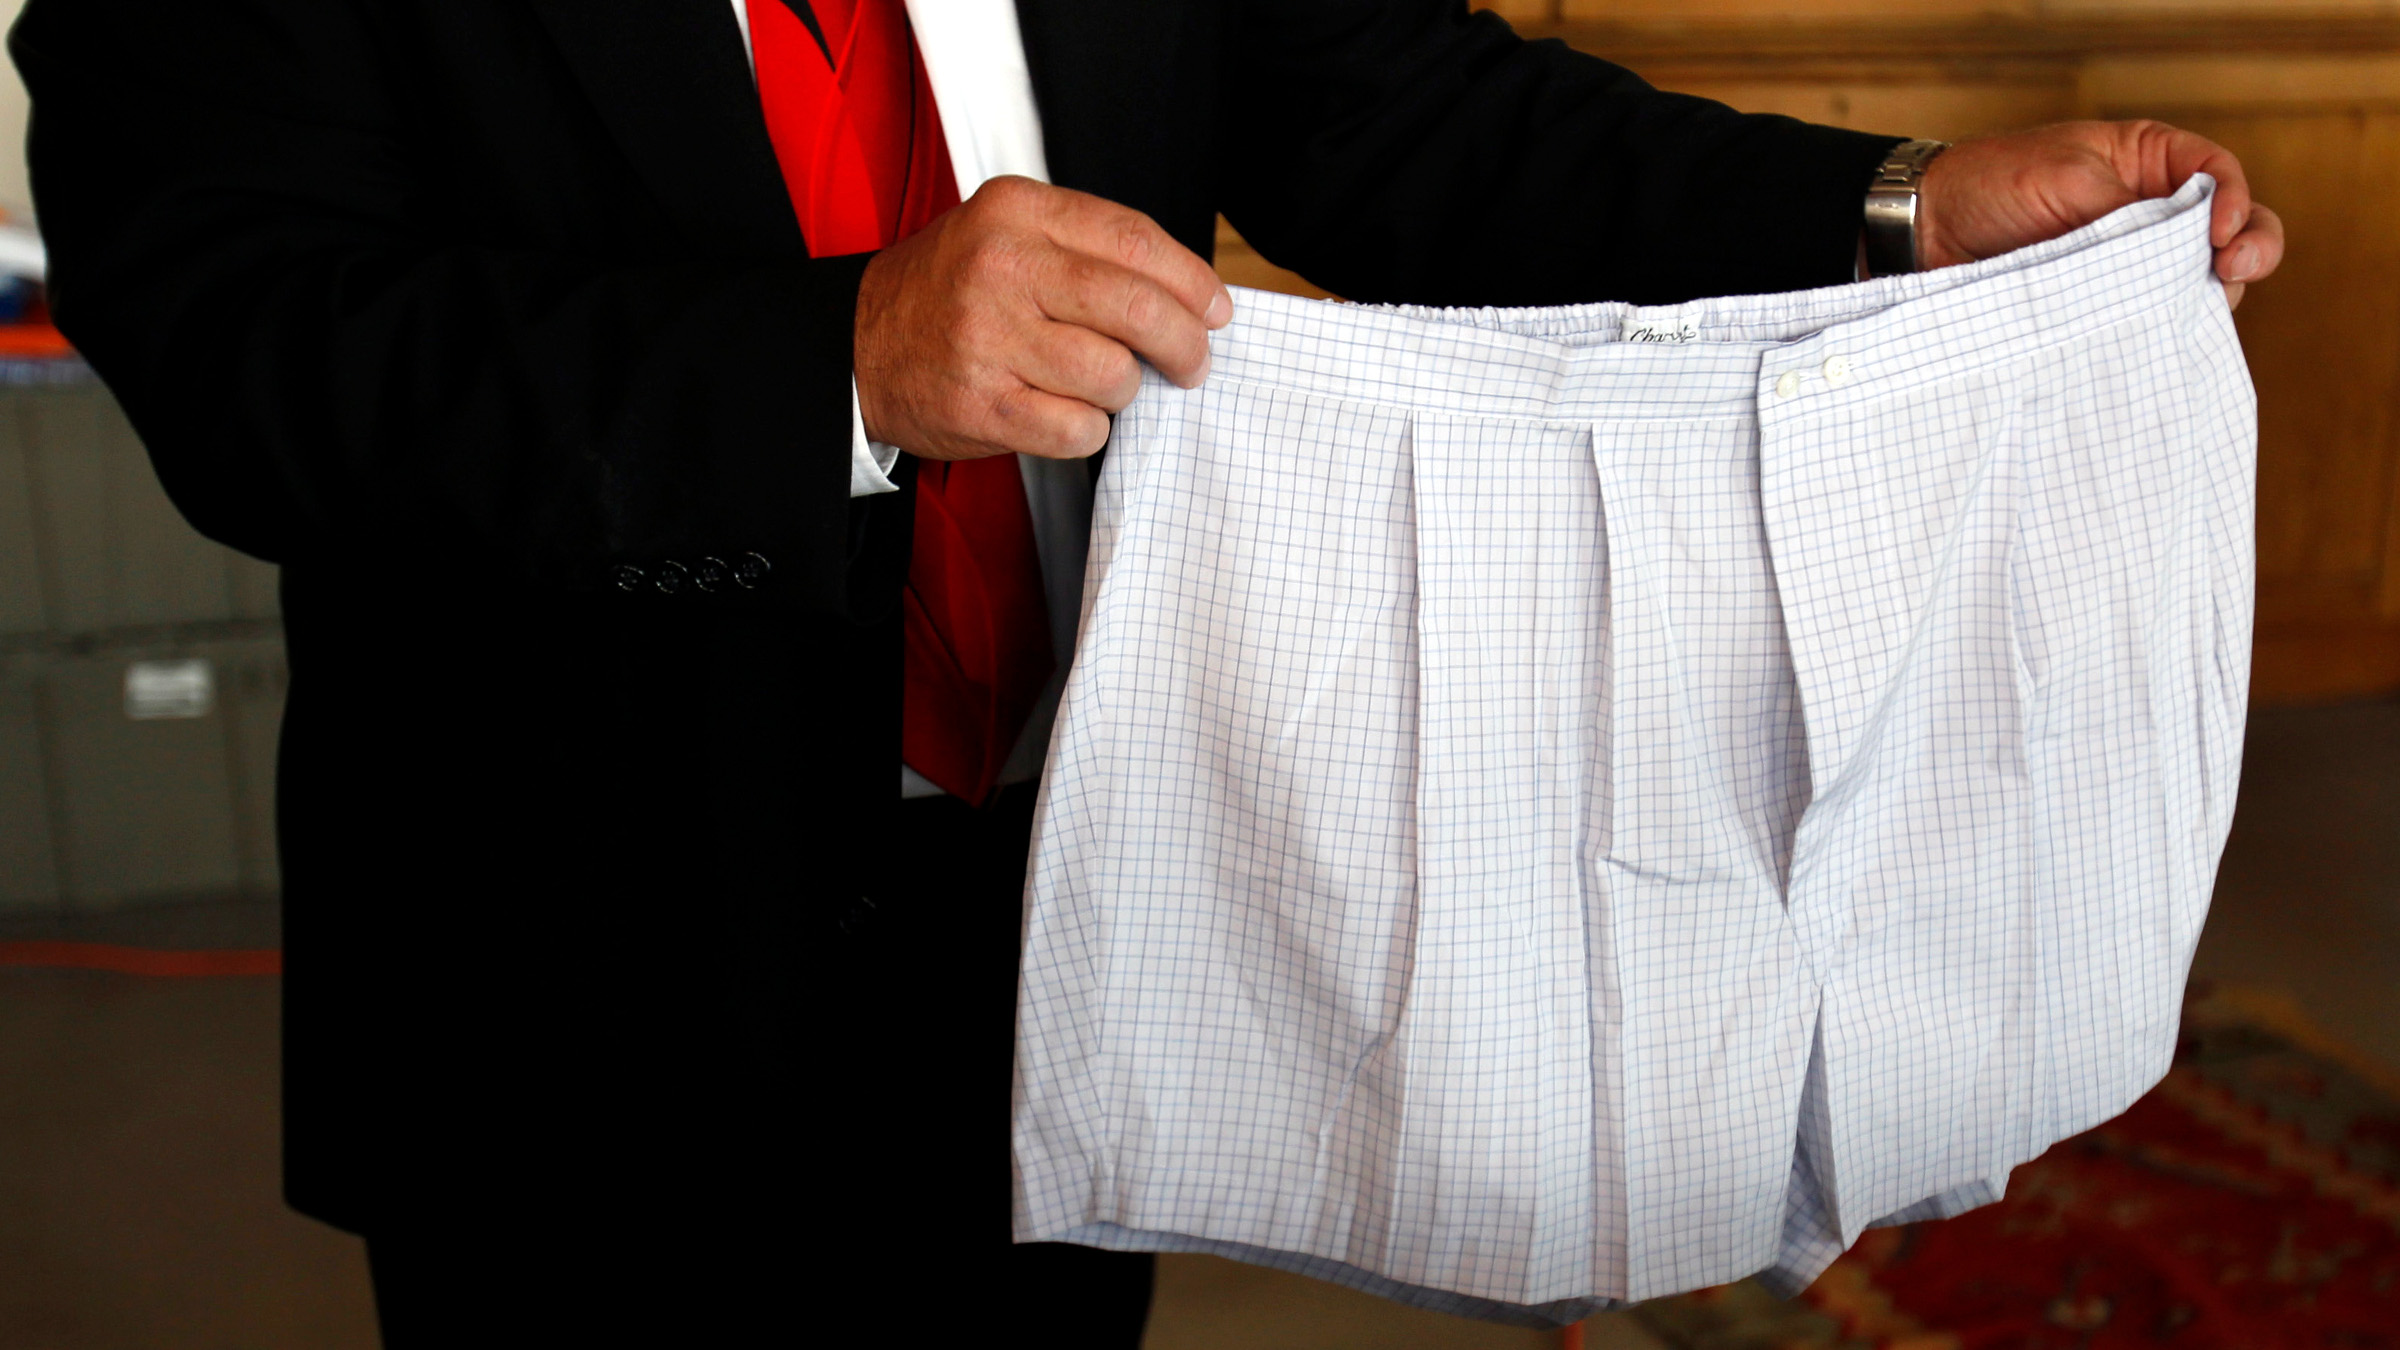 A pair of boxer shorts belonging to Bernard Madoff are displayed by an auctioneer during a media preview of the U.S. Marshals Service 'Madoff II Auction' in the Brooklyn borough of New York November 10, 2010. More than 400 pieces of personal property, jewelry, and antiques from Madoff and his wife, Ruth, will be sold at the auction in New York City on November 13, 2010. The property was forfeited and seized in connection with the criminal prosecution of Madoff by the United States Attorney's Office and the proceeds from the auction will be deposited in the United States Department of Justice Asset Forfeiture Fund to compensate the victims of the multi-billion dollar scam, according to a release from the U.S. Marshals Service.